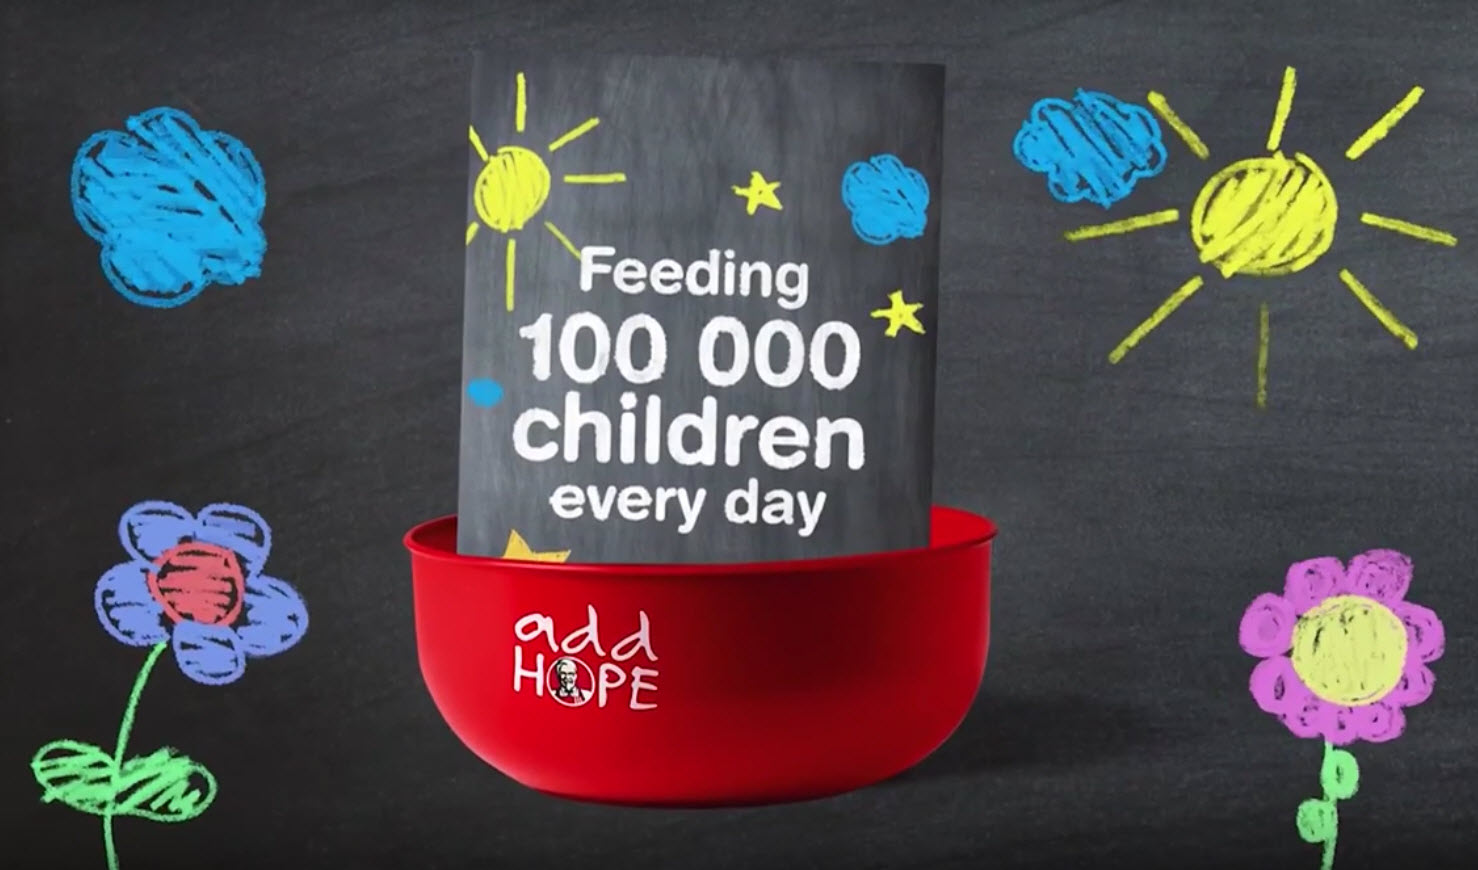 KFC 'Add Hope' Campaign World Hunger Day (2015)